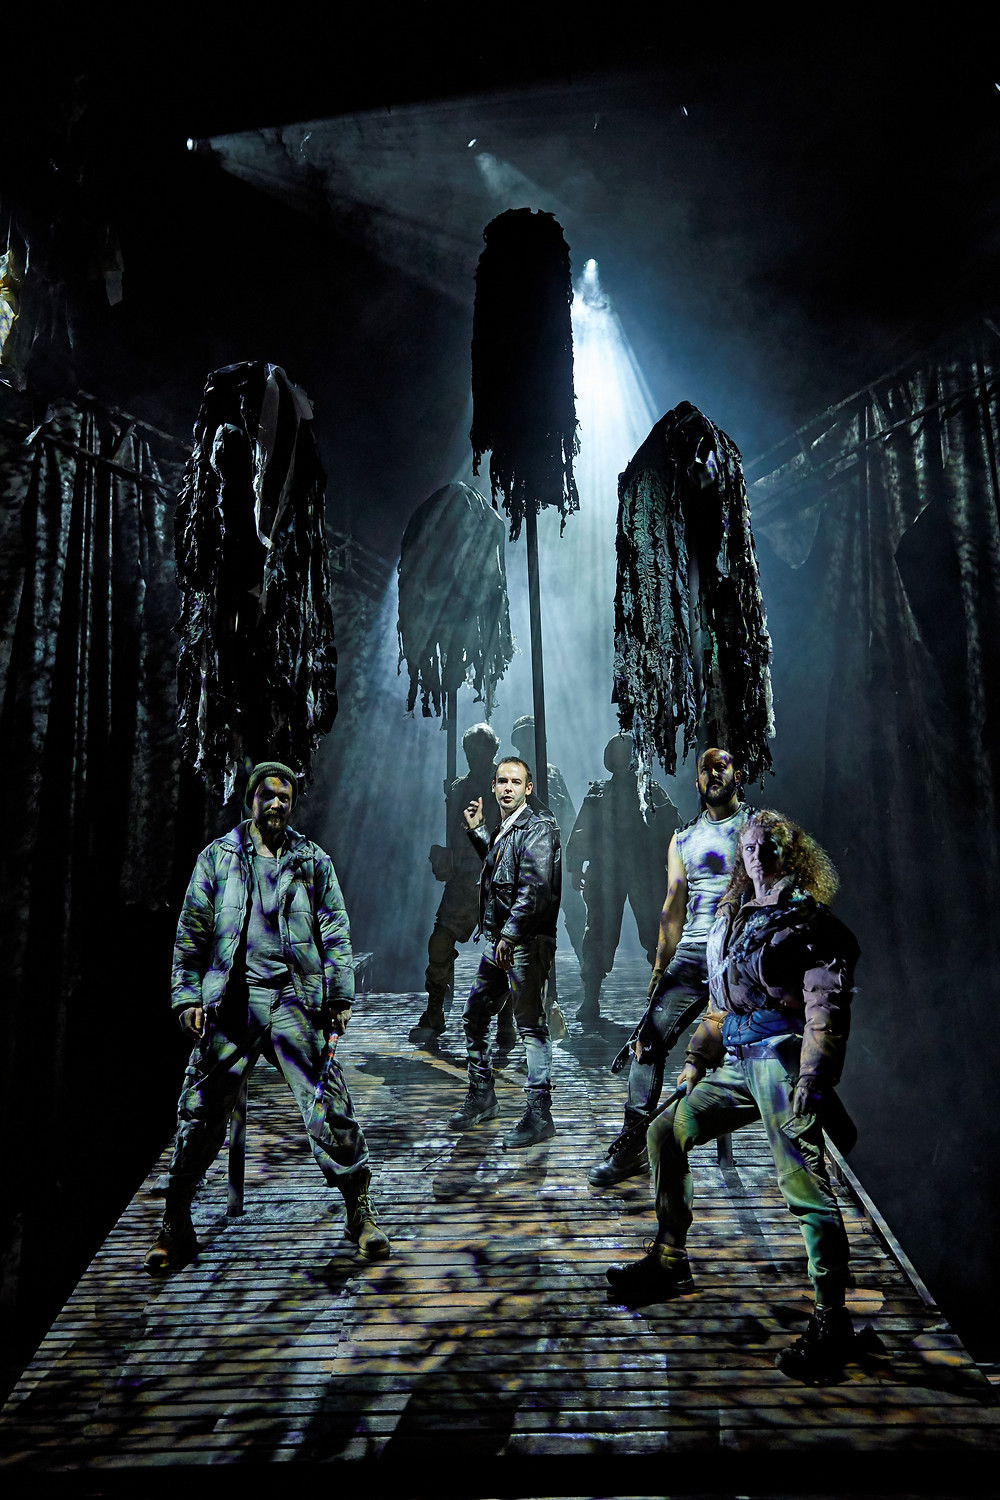 Macbeth - NT - The cast of the UK and Ireland tour of Macbeth - Credit BrinkhoffMogenburg